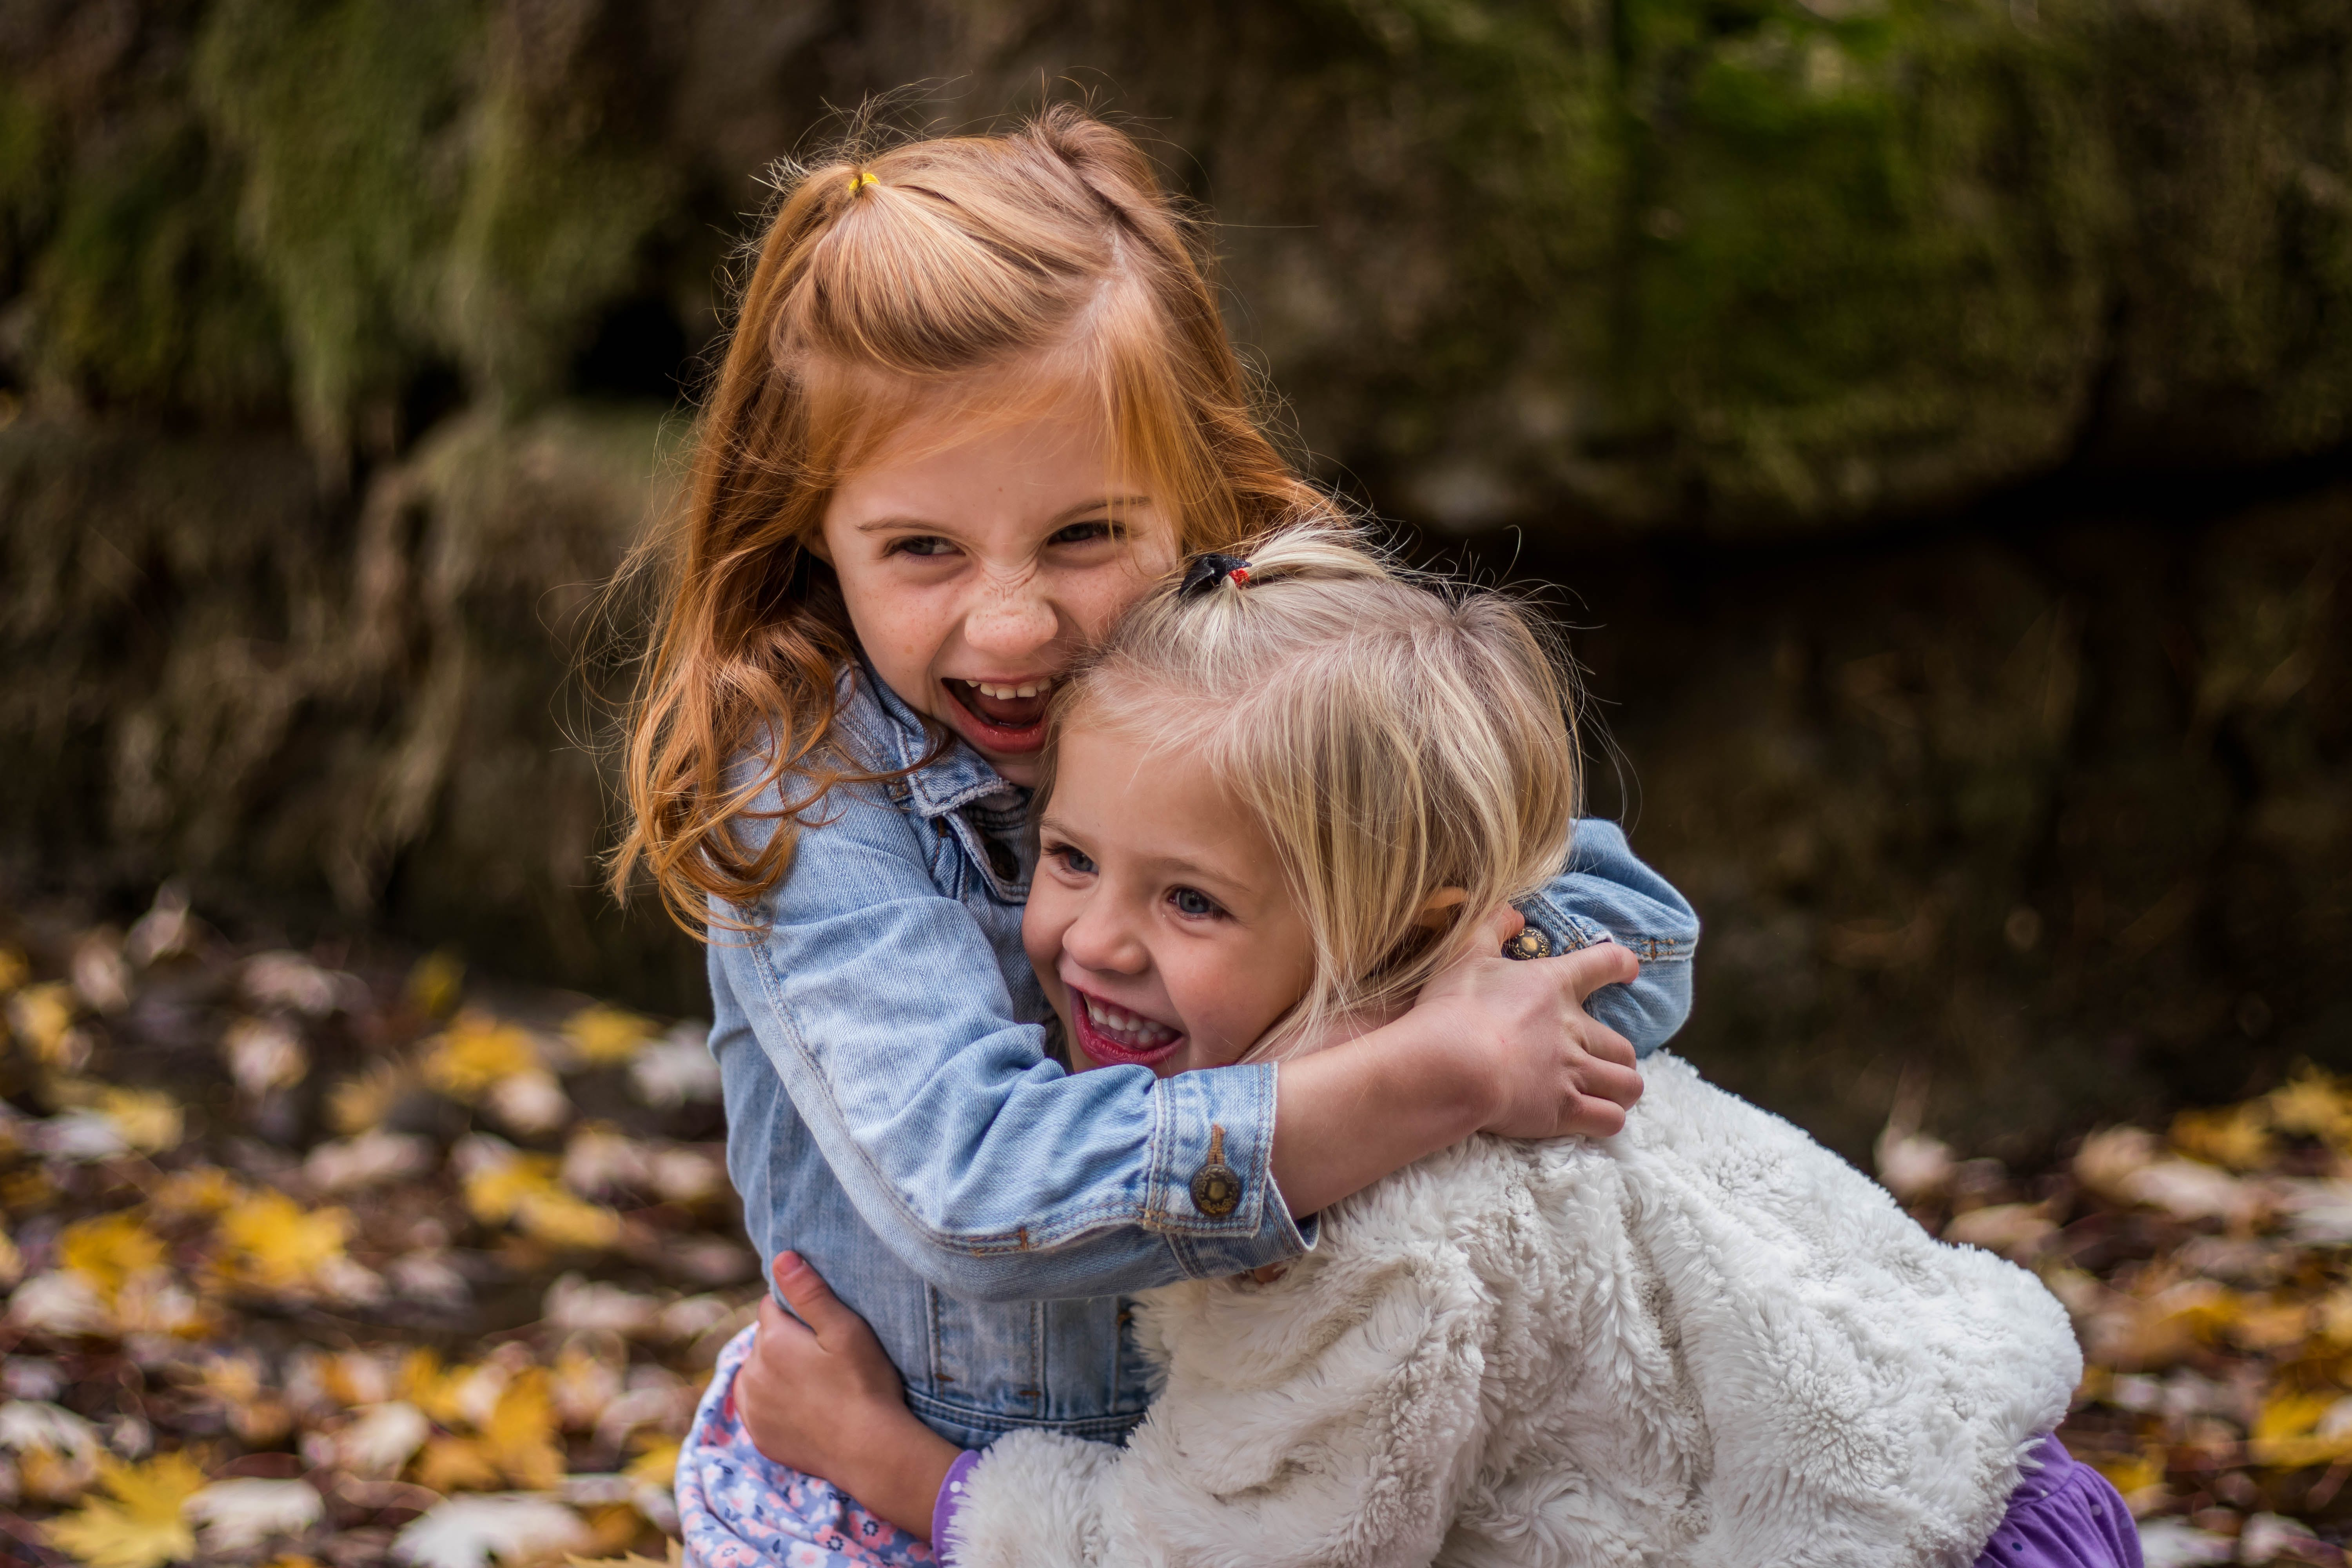 2 Girls Hugging Each Other Outdoor during Daytime